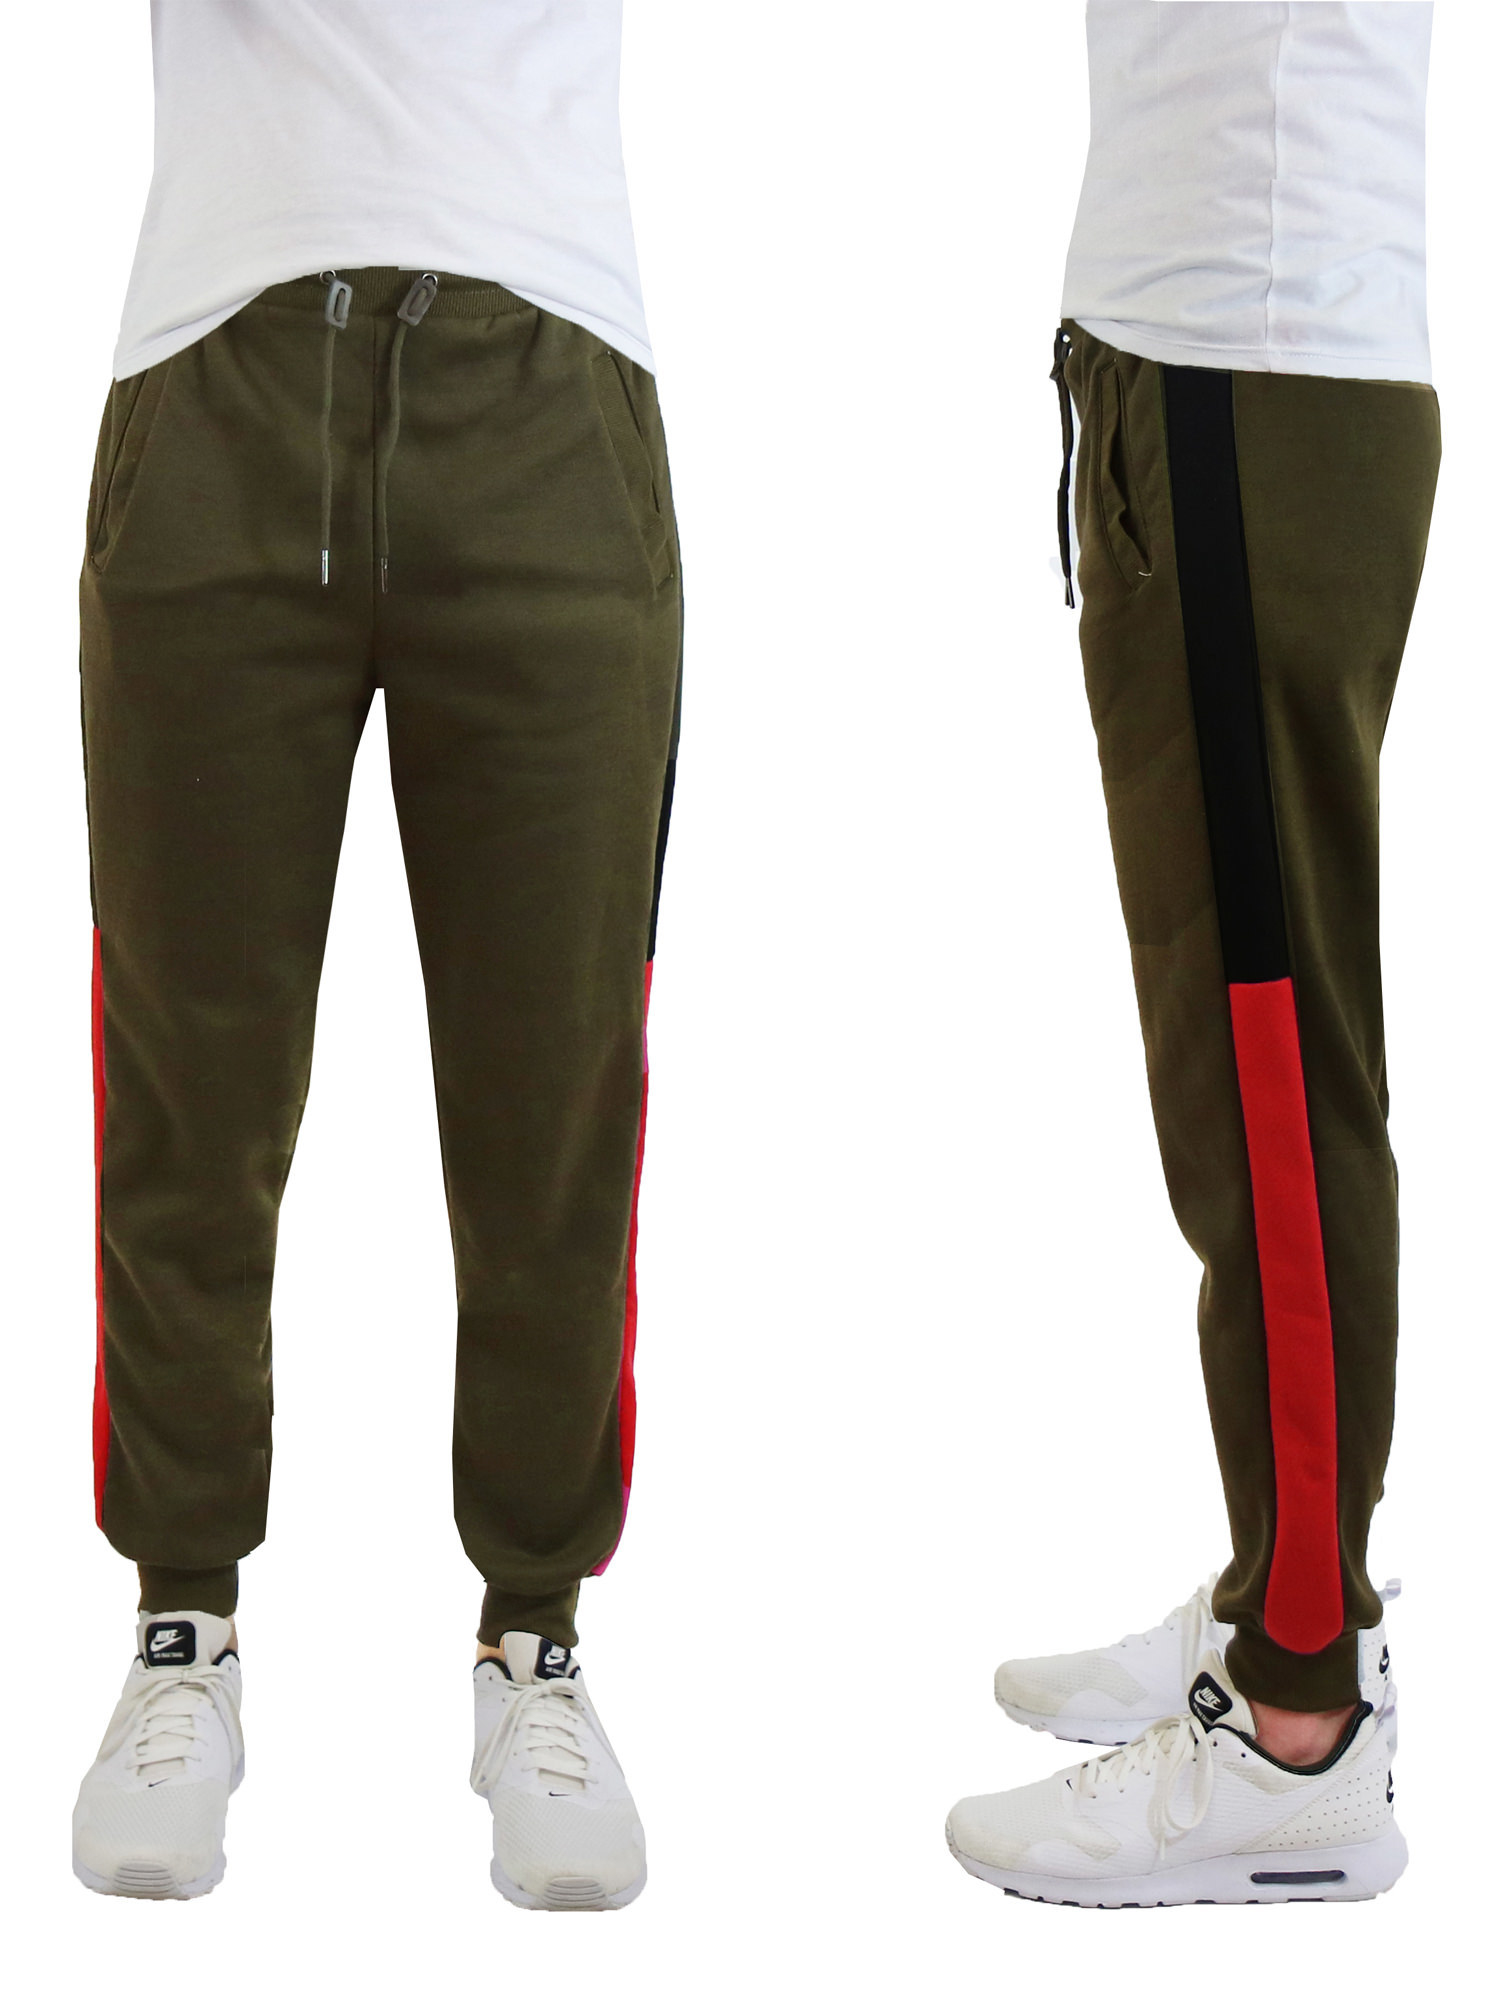 The olive green sweatpants with red side stripes